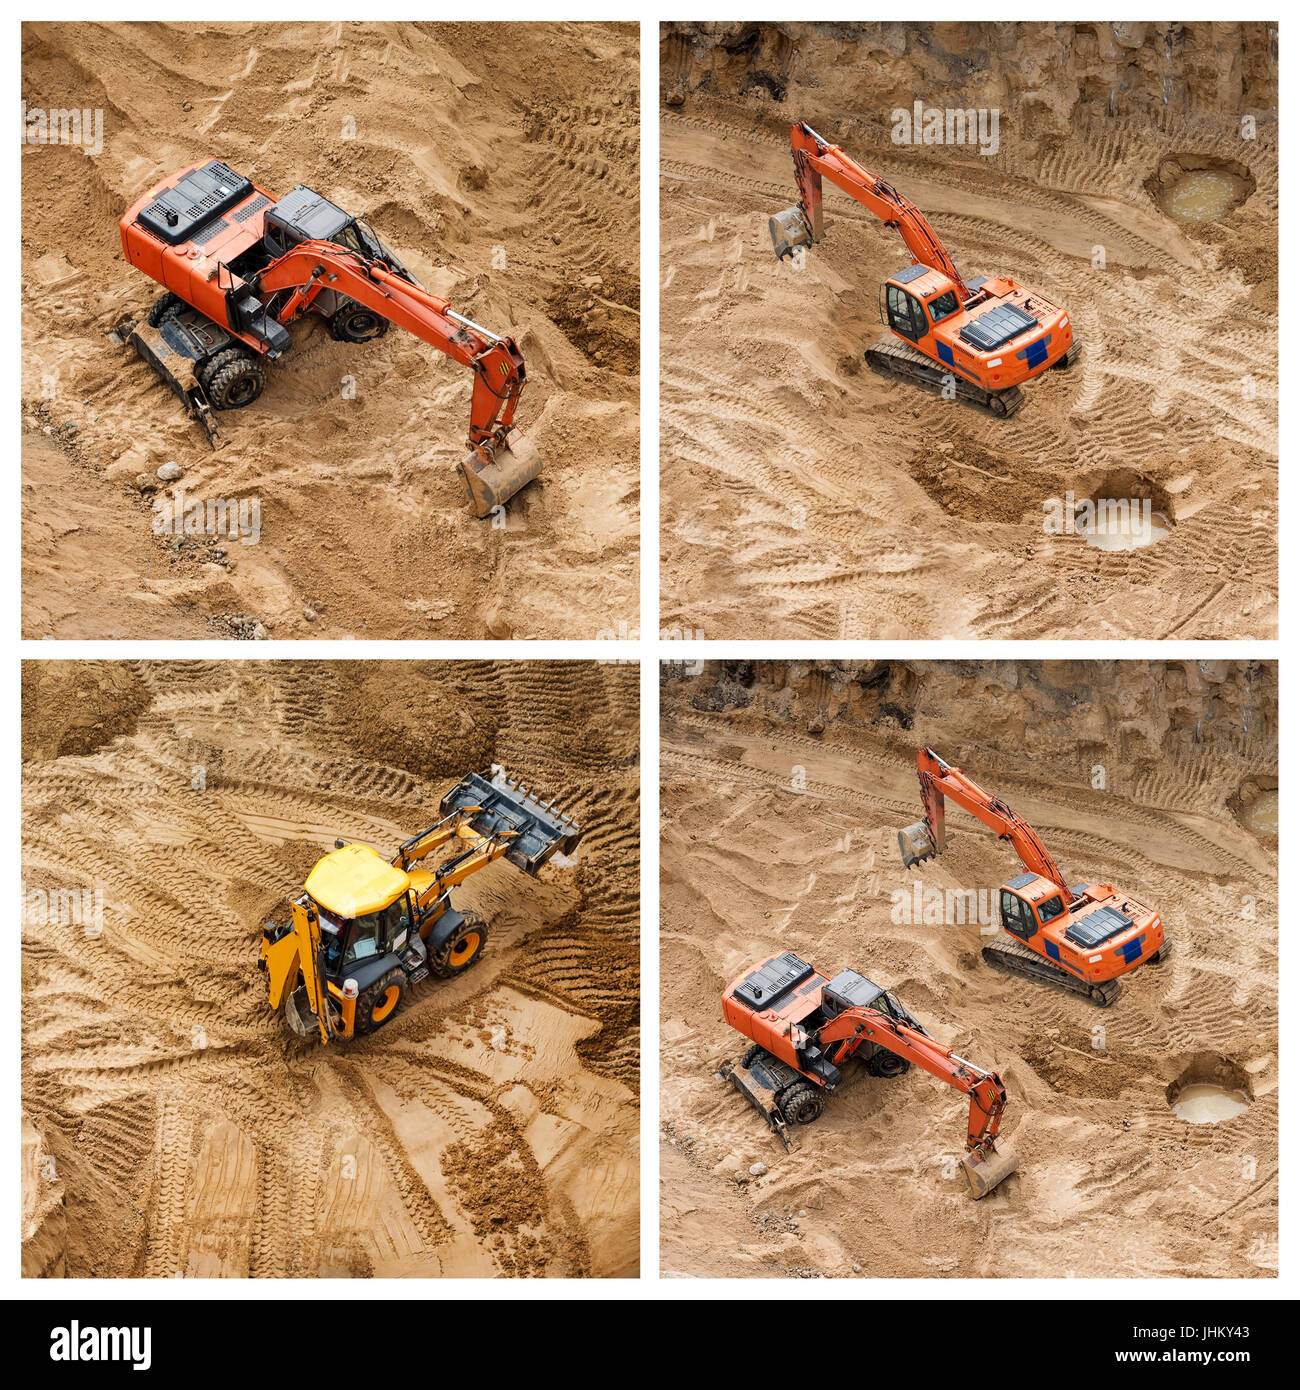 Set of excavators at sandpit during earthmoving works. Construction of concrete foundation of new building. - Stock Image